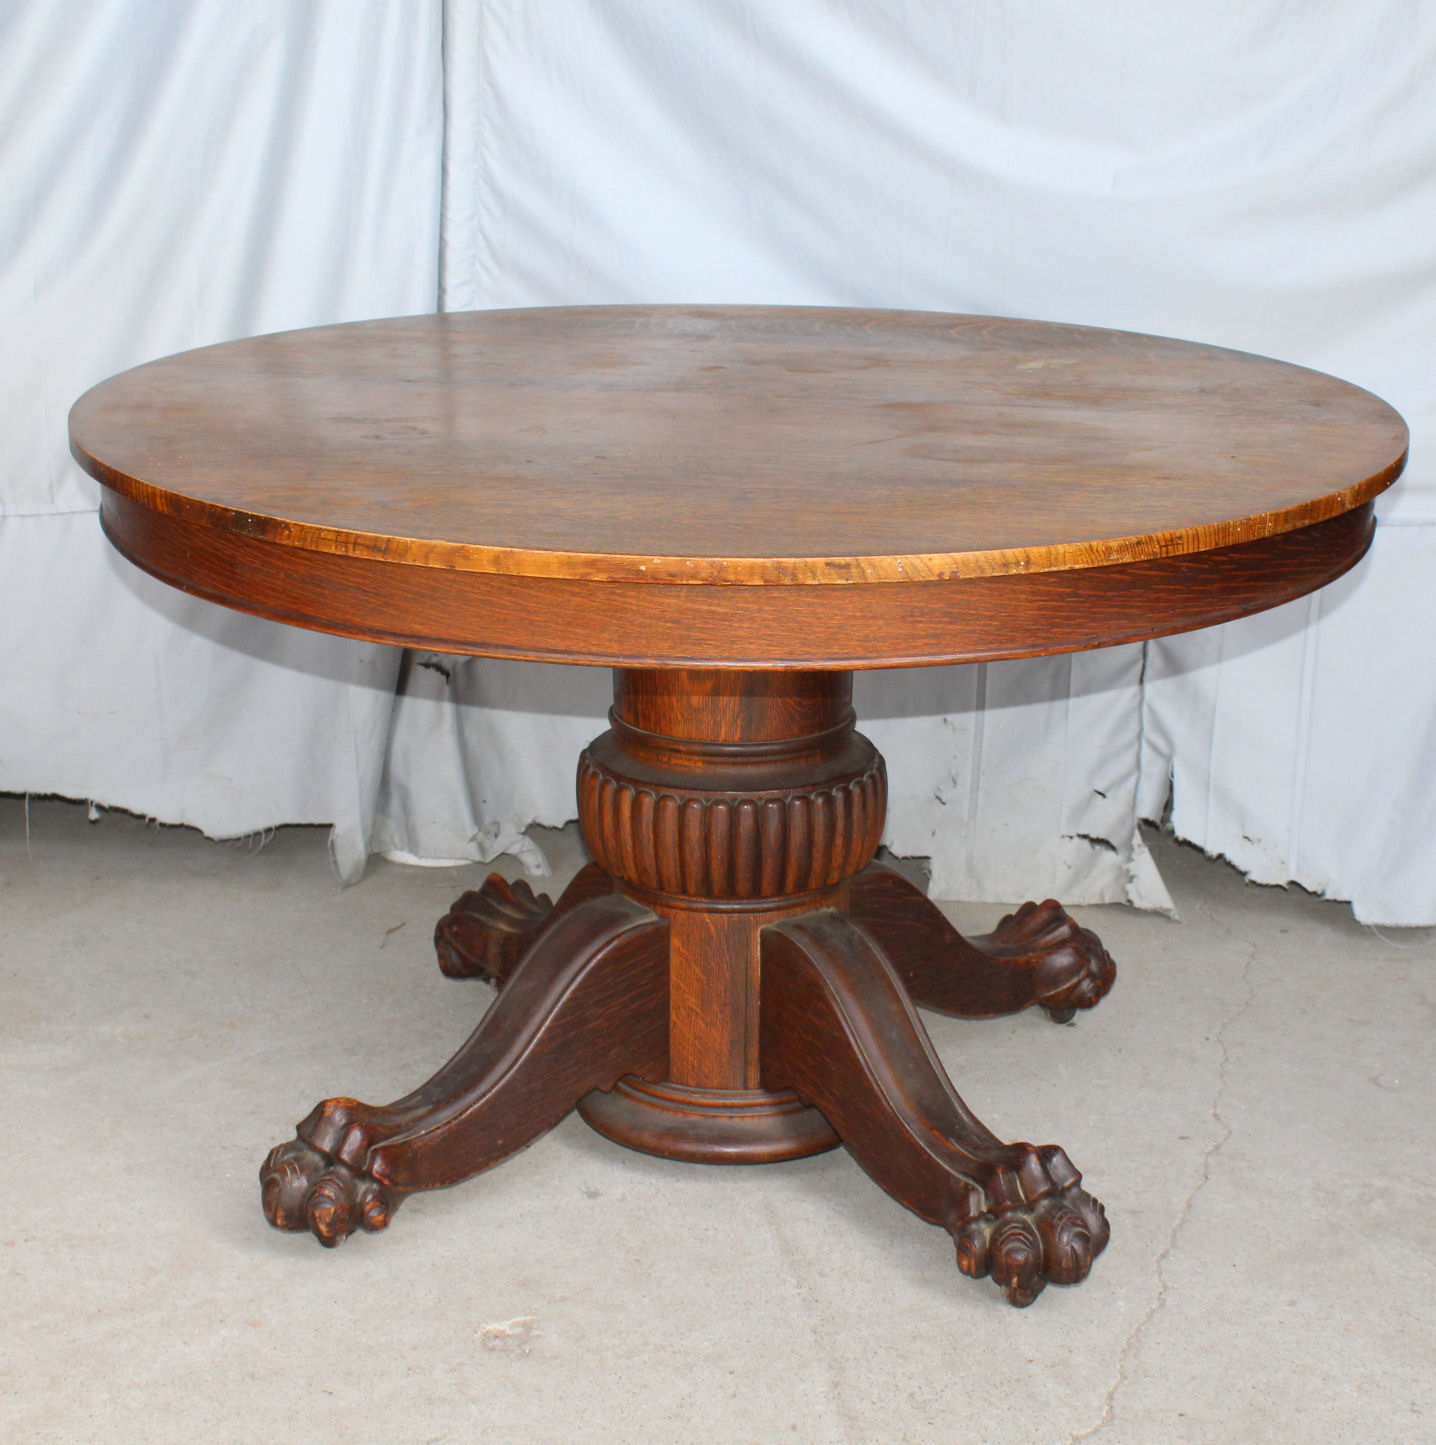 Round Oak Dining Table Antique Round Oak Dining Table Claw Feet